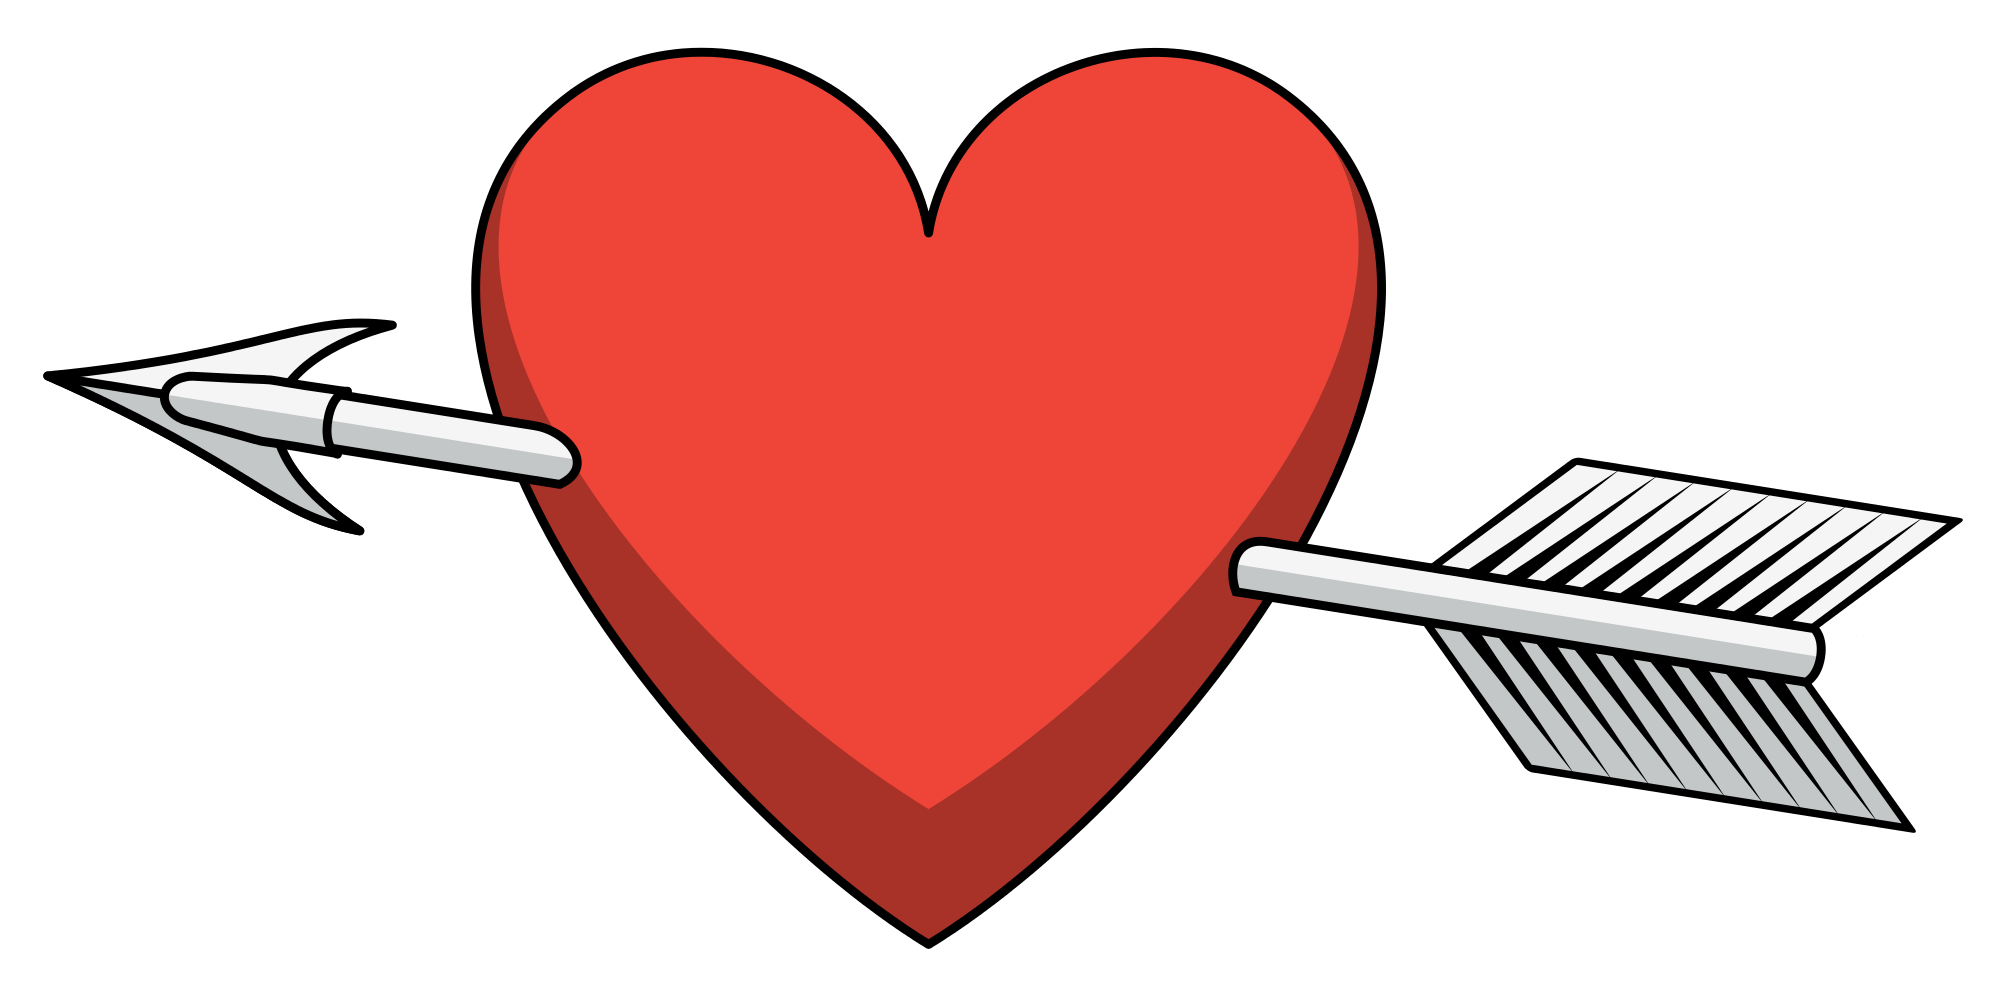 Free clipart heart with arrow clip art download File:Heart arrow shaded.svg - Wikimedia Commons clip art download